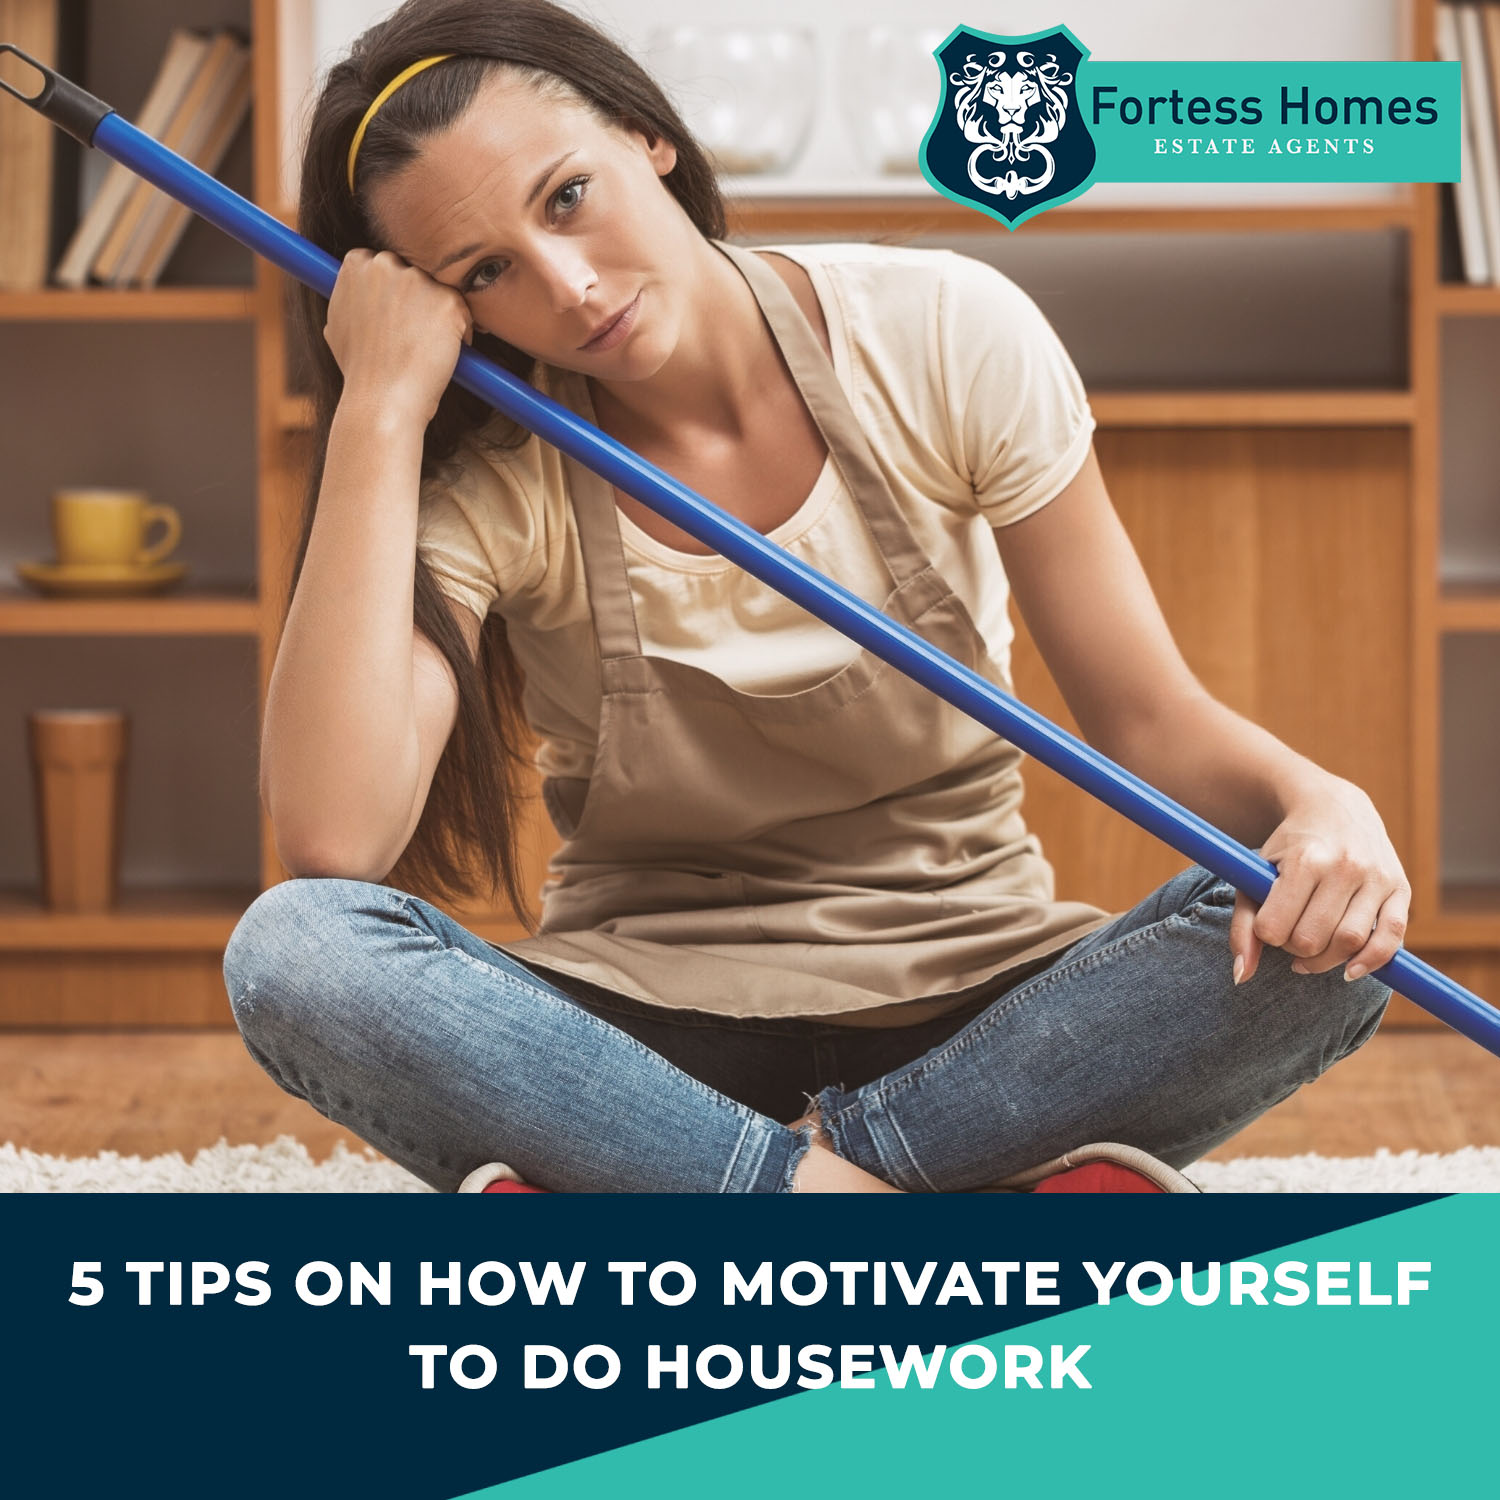 Tips on how to motivate yourself to do housework